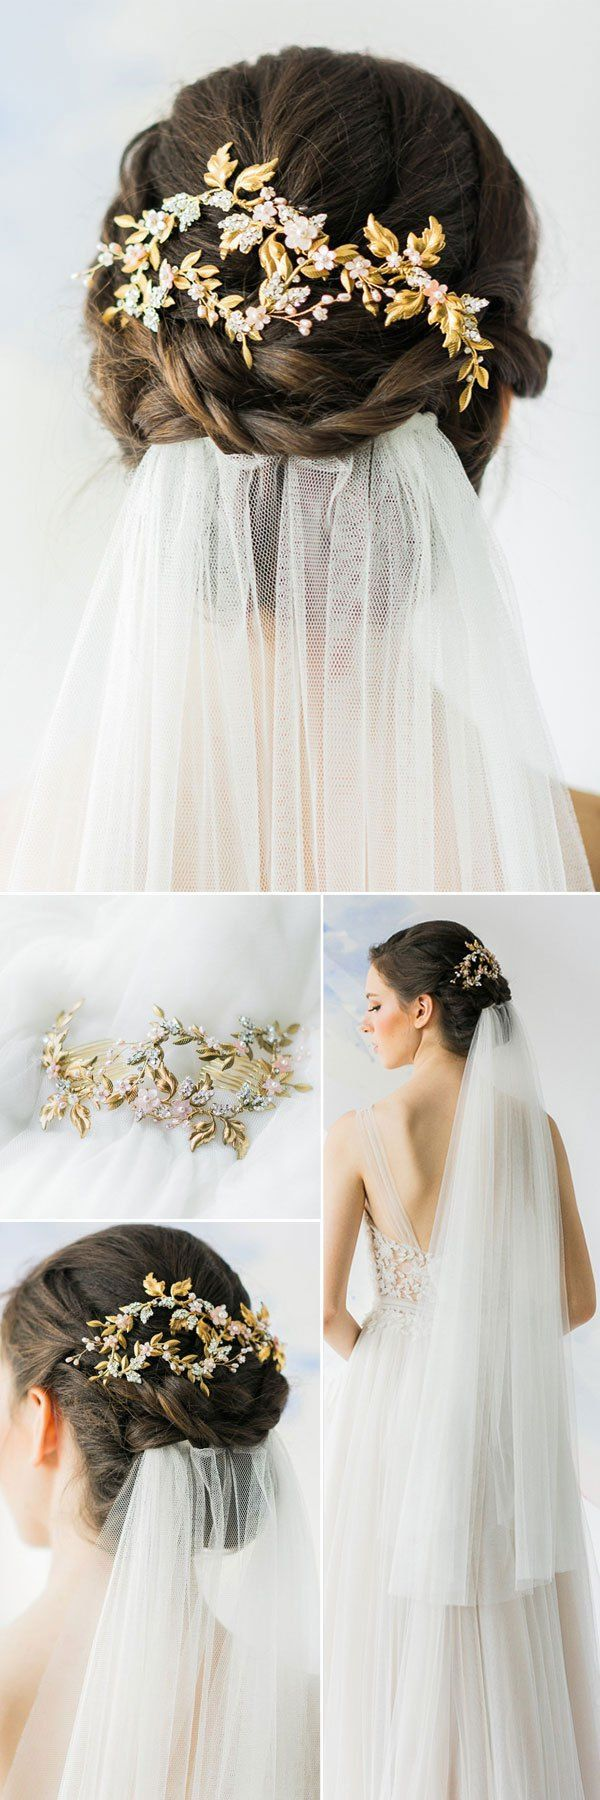 Top 20 wedding hairstyles with veils and accessories #accessoires # wedding hairstyles #with #veil #top